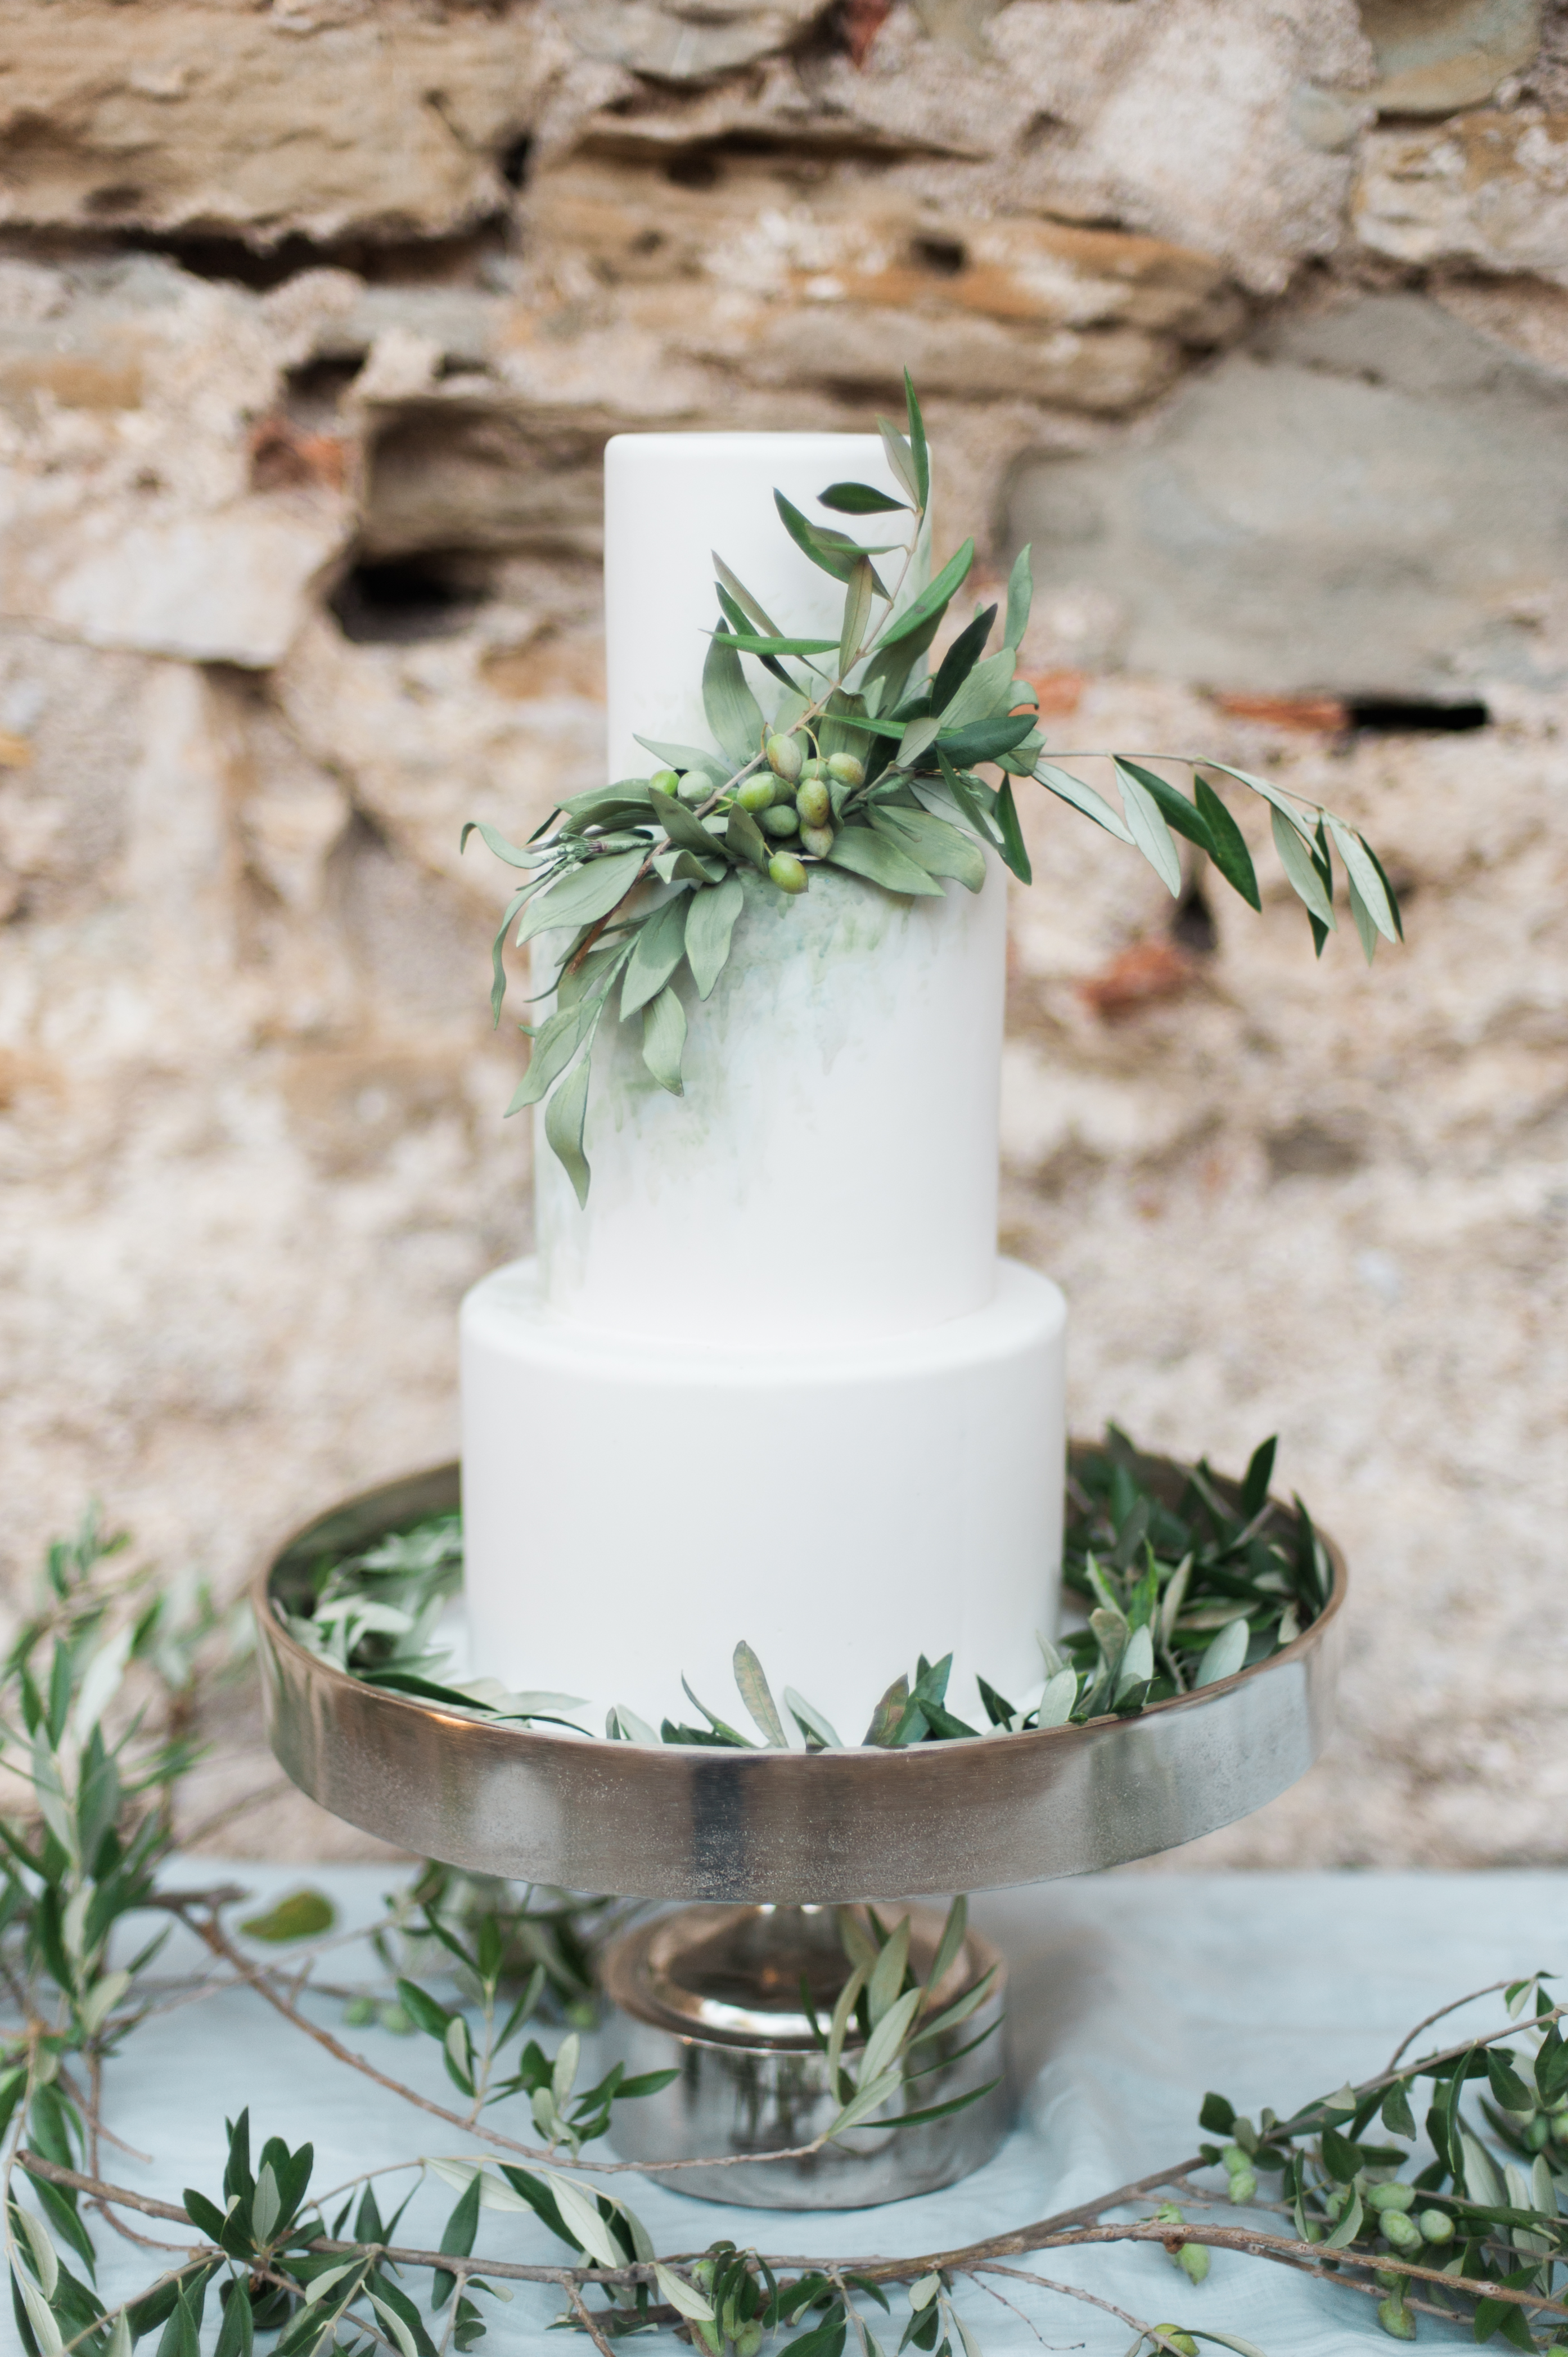 olive themed wedding cake in greece